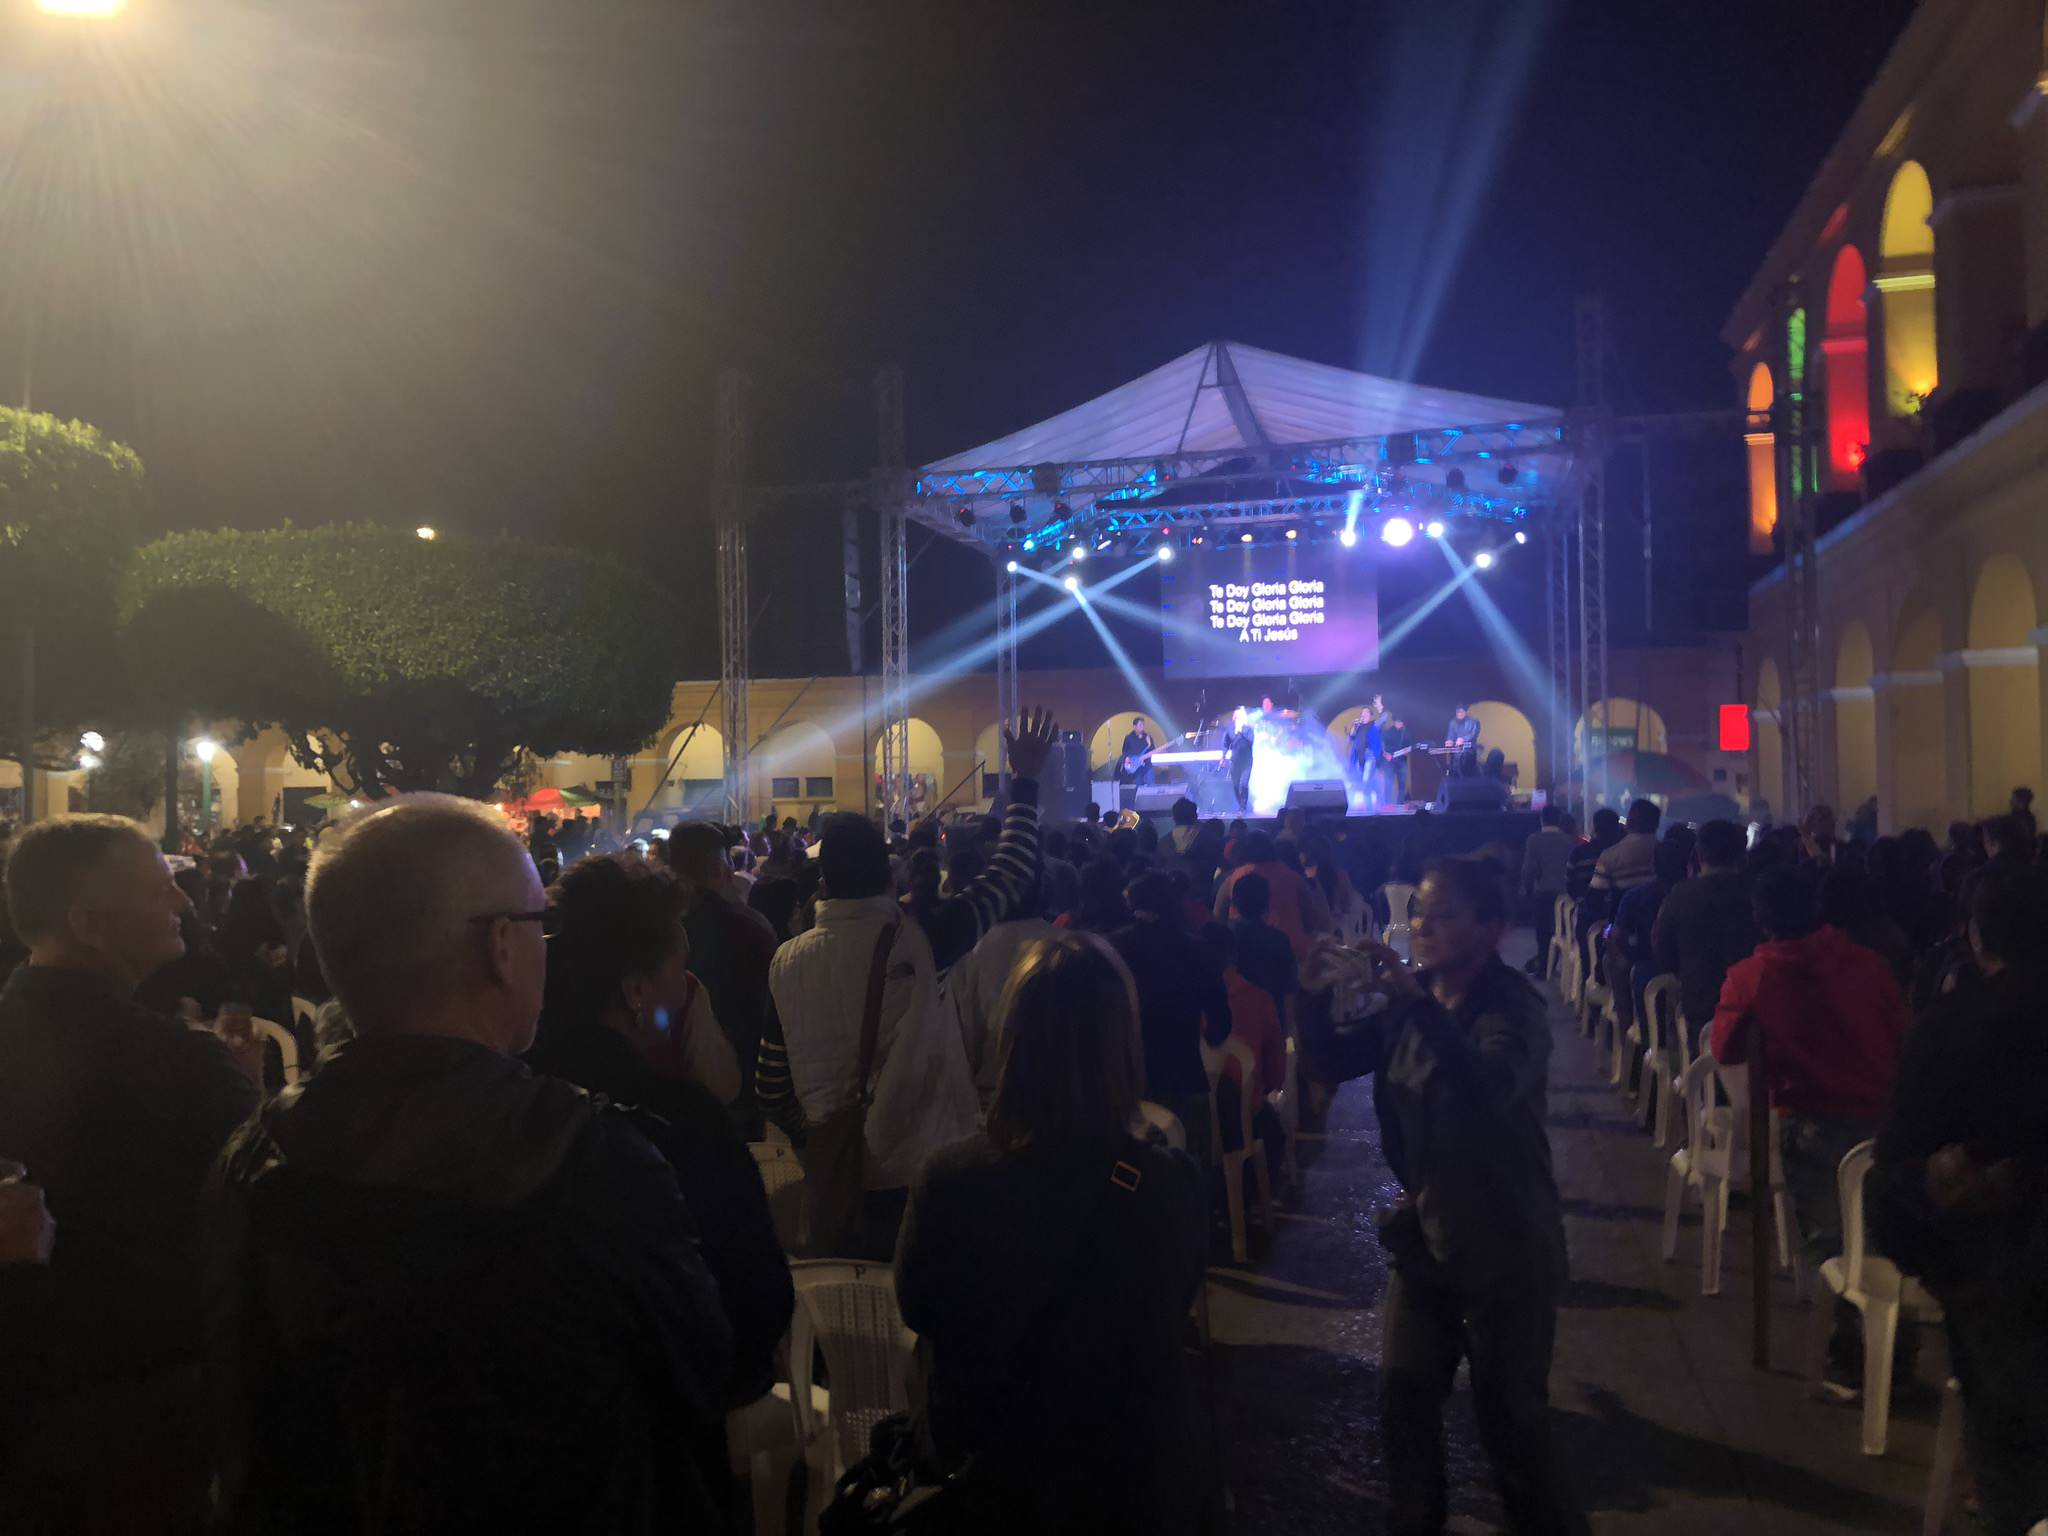 Christian band concert in the square.jpeg